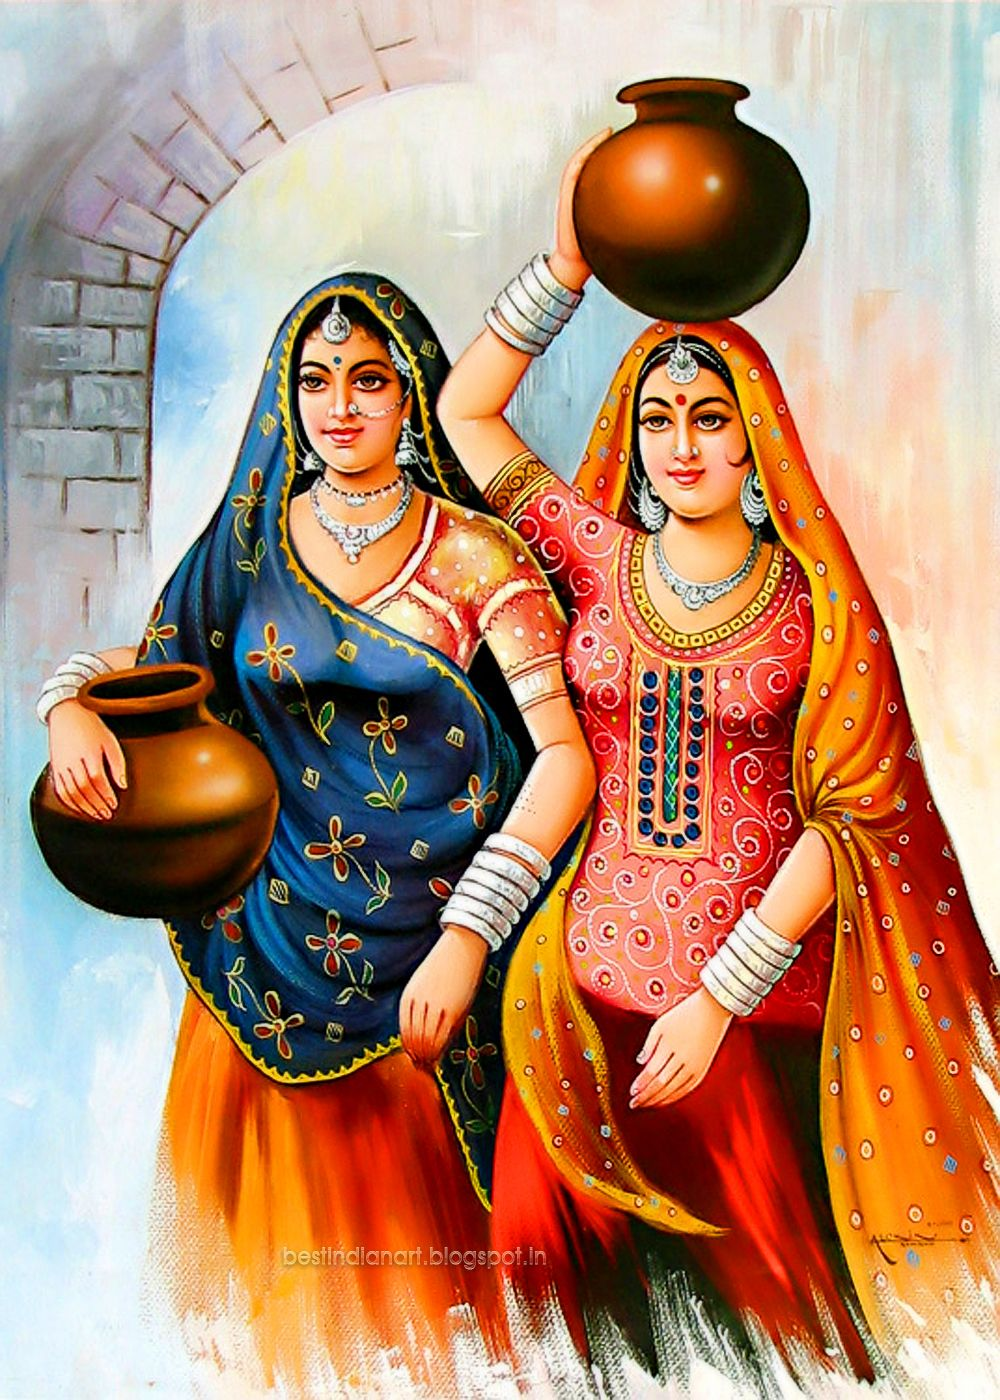 TWO INDIAN VILLAGE WOMAN WITH WATER POT BEST INADIAN ART